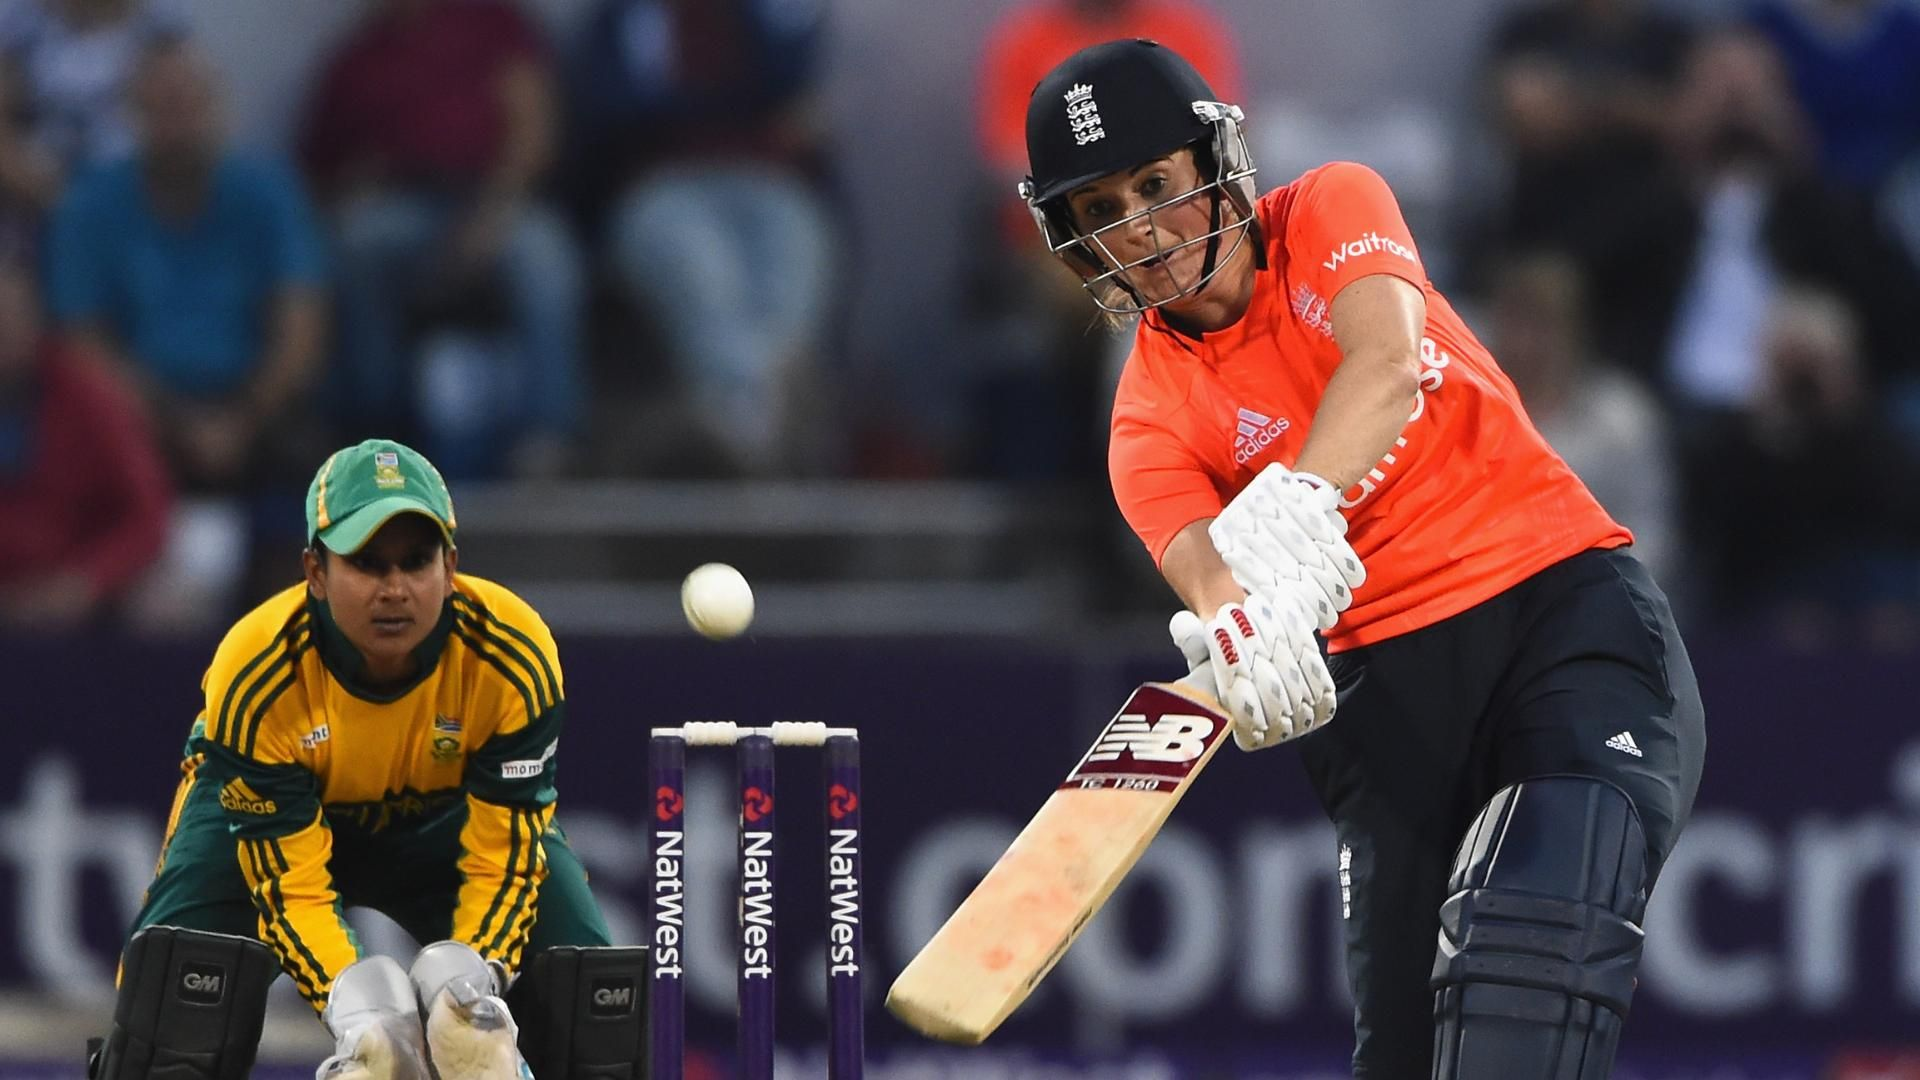 England vs South Africa T20 World Cup Highlights Images